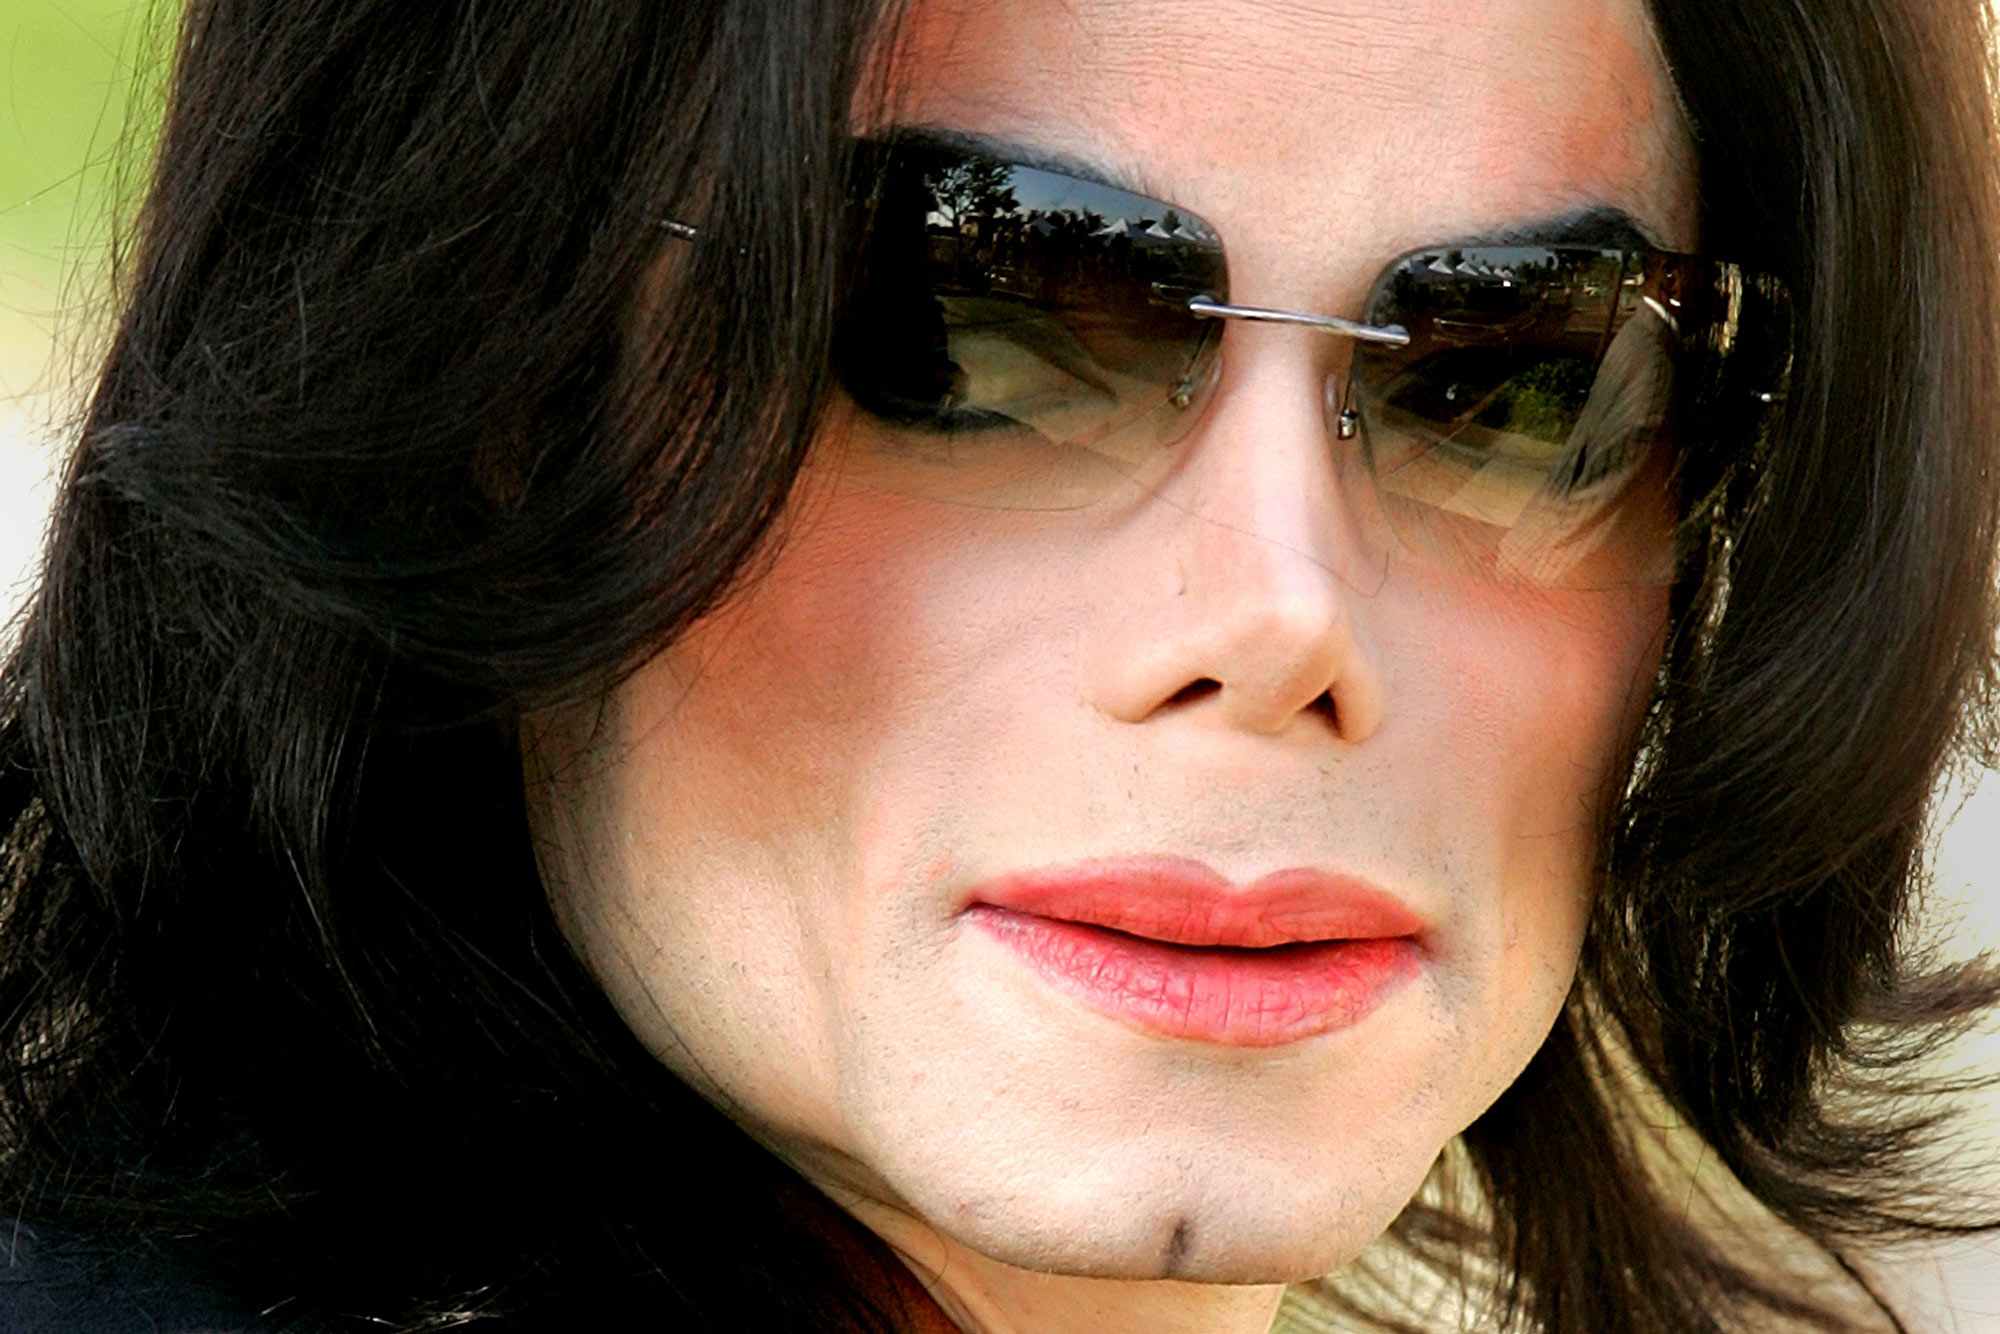 Michael Jacksons home filled with sick snaps of naked